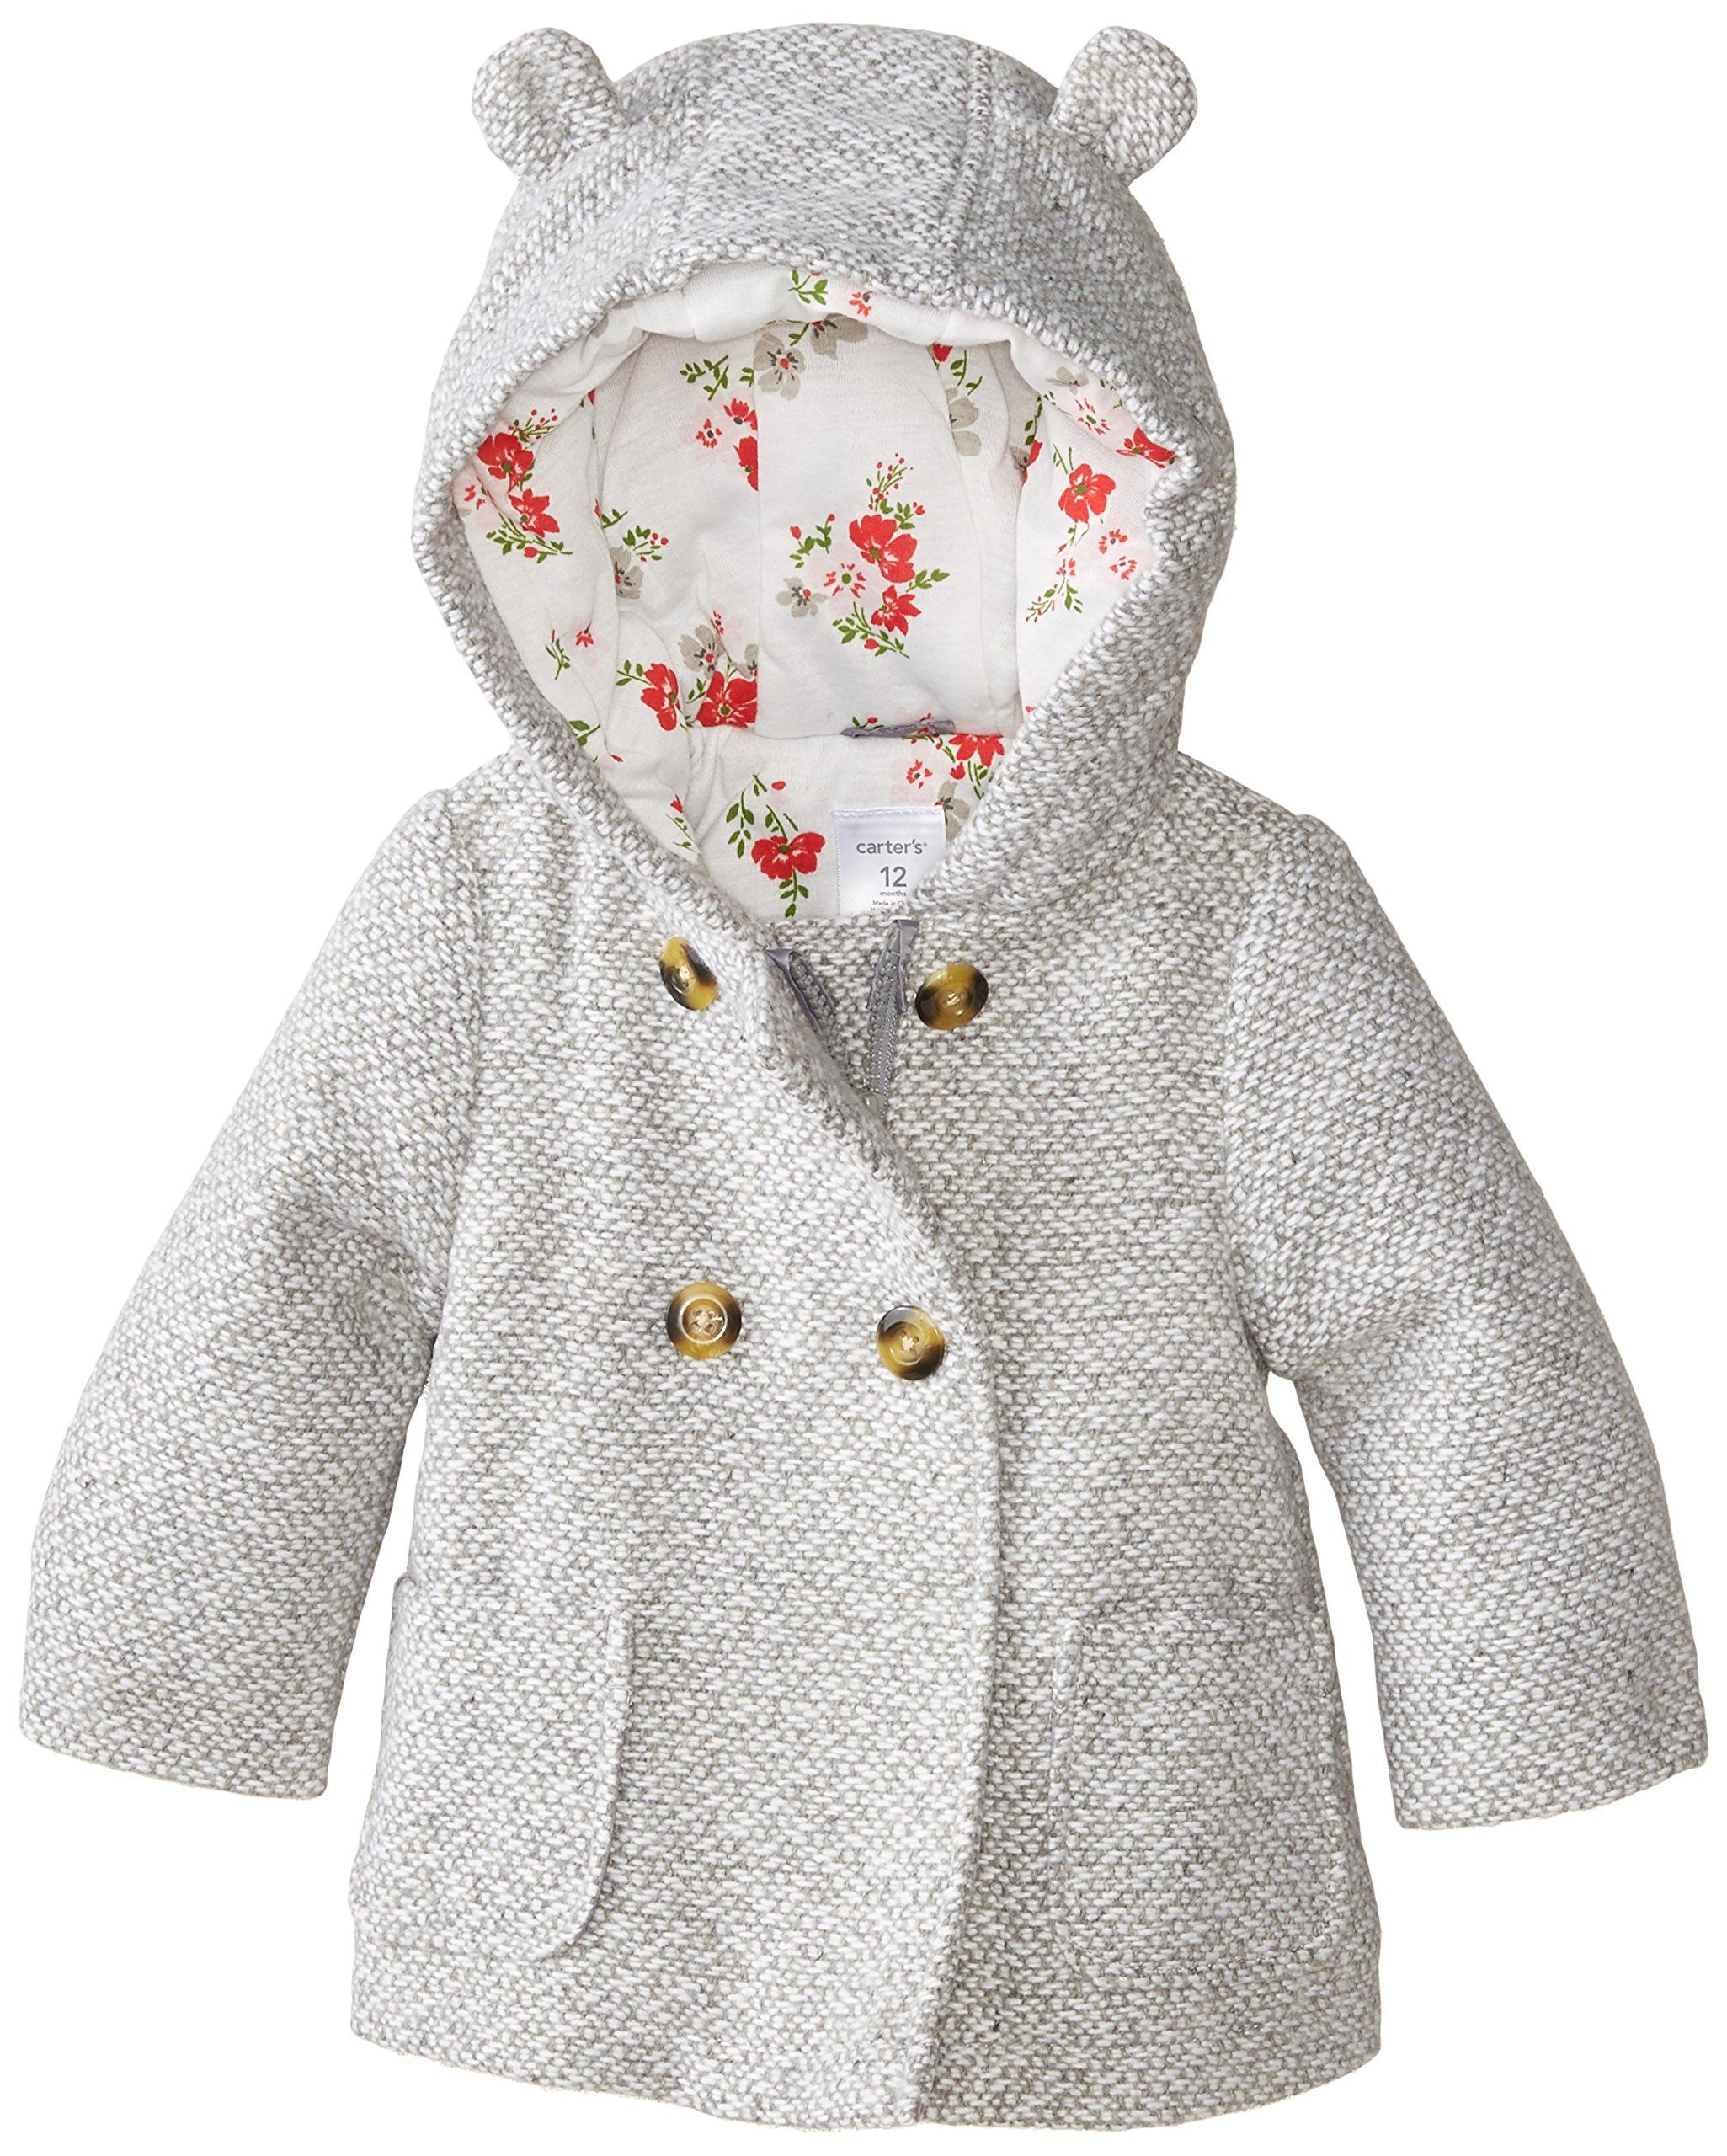 Free shipping on baby girl coats, jackets & outerwear at salestopp1se.gq Shop the latest styles from the best brands. Totally free shipping & returns.